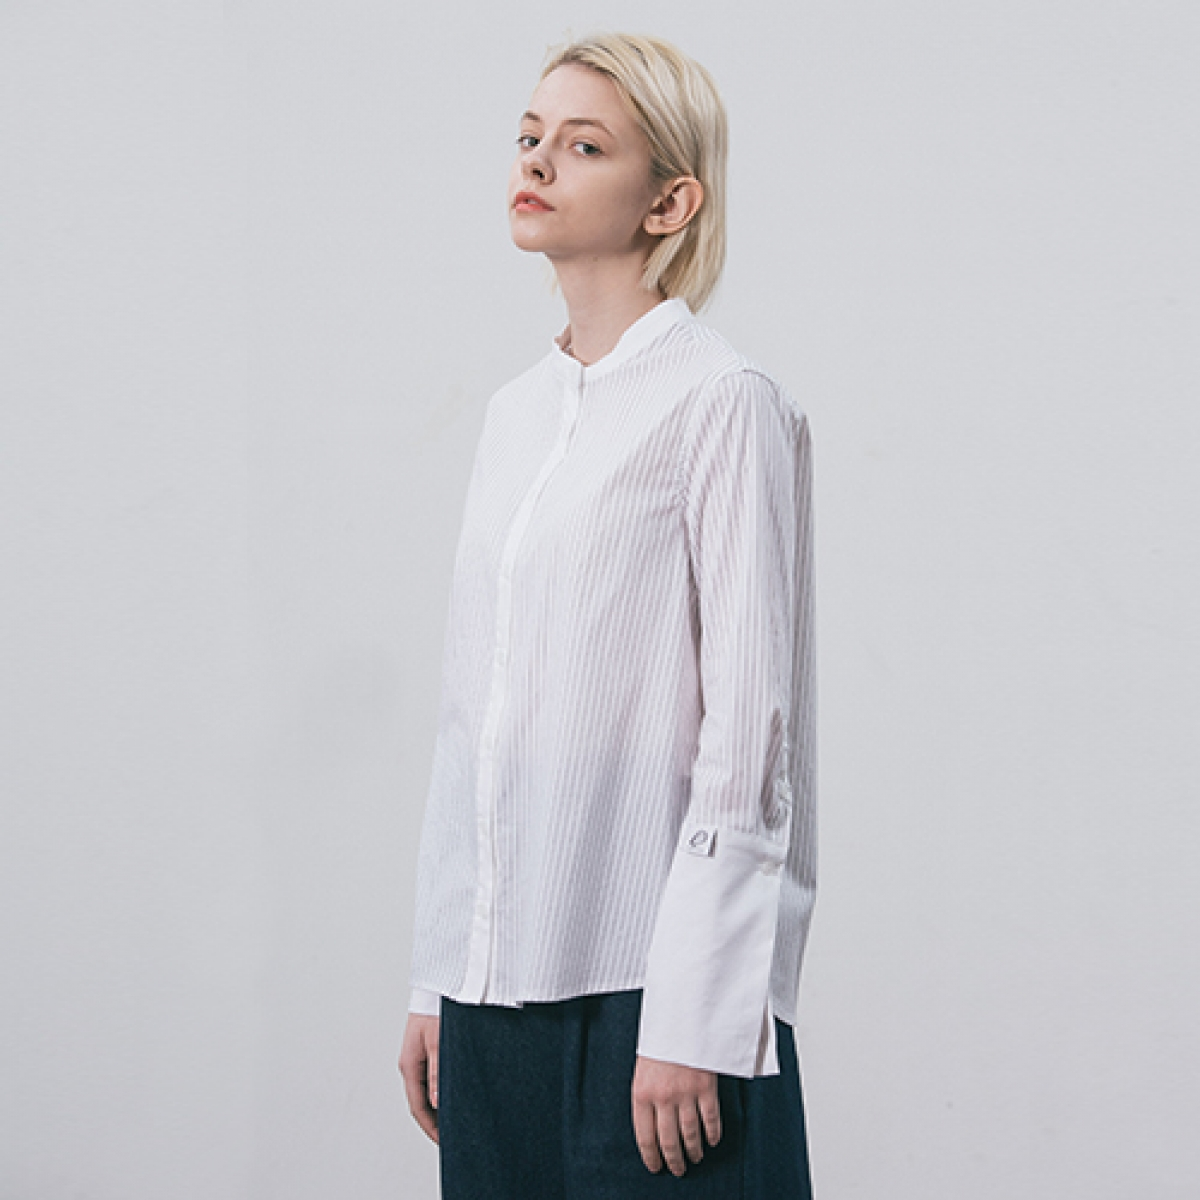 LI COLLARLESS SHIRT_BK